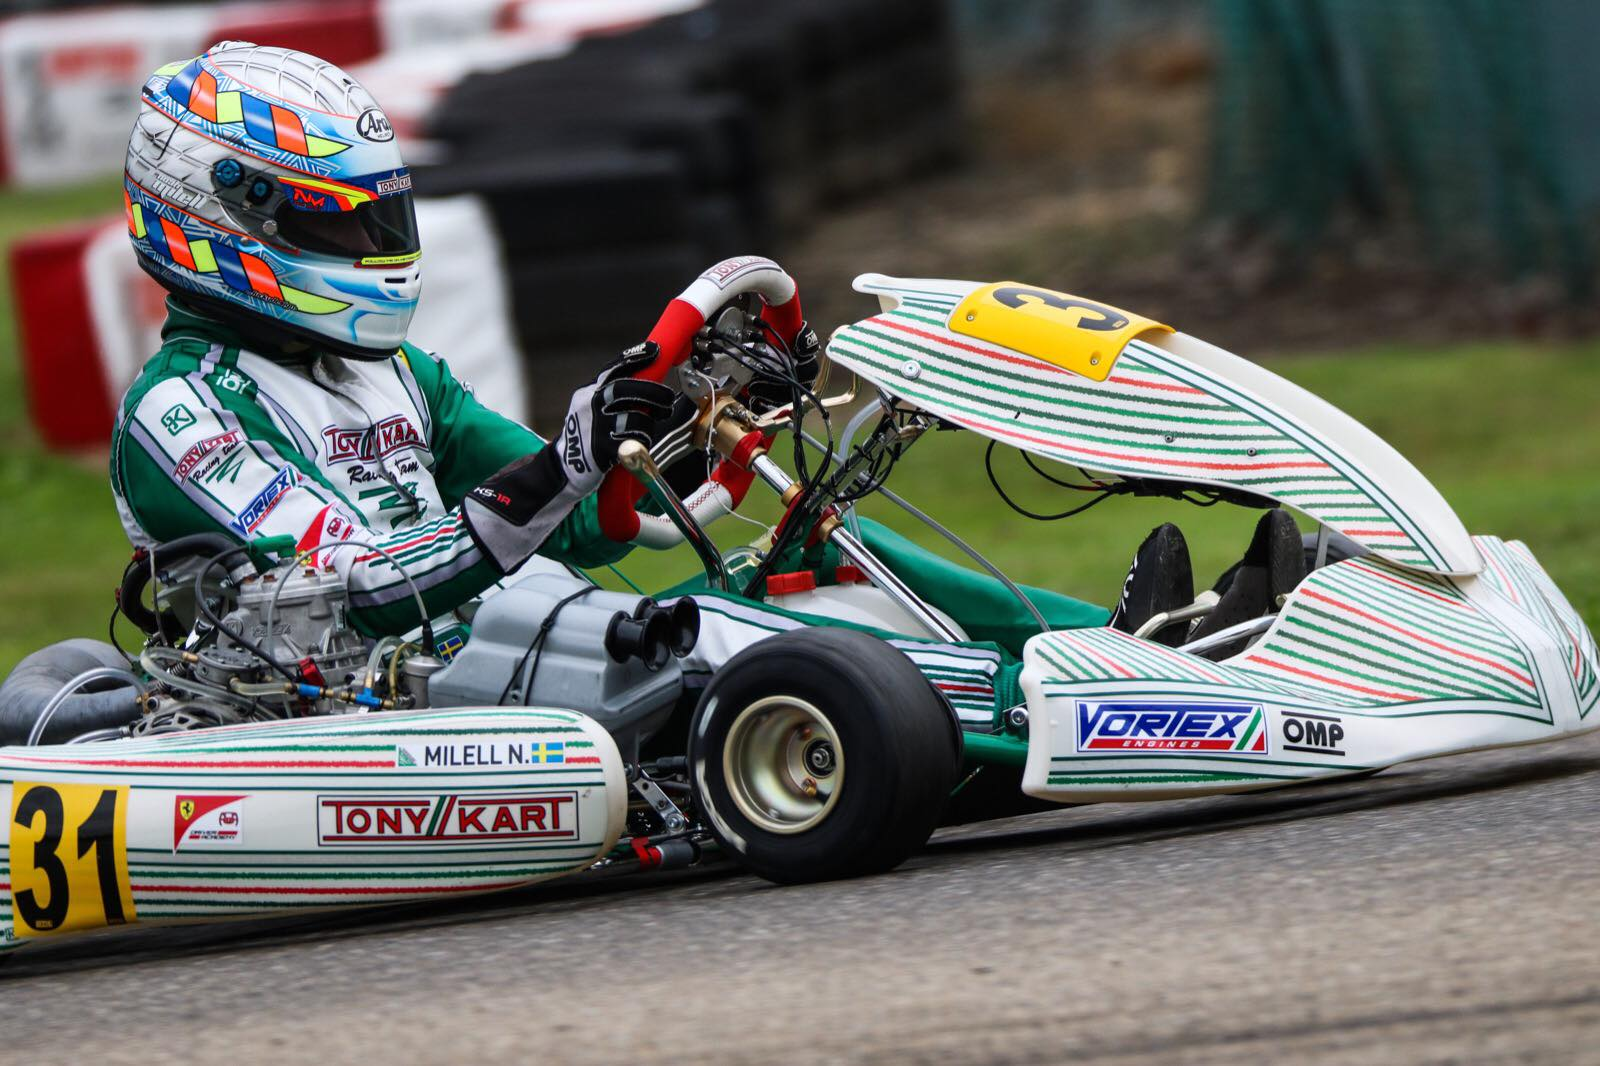 FIA Karting European Championship, Genk - Milell, Gustavsson and Braeken in pole position